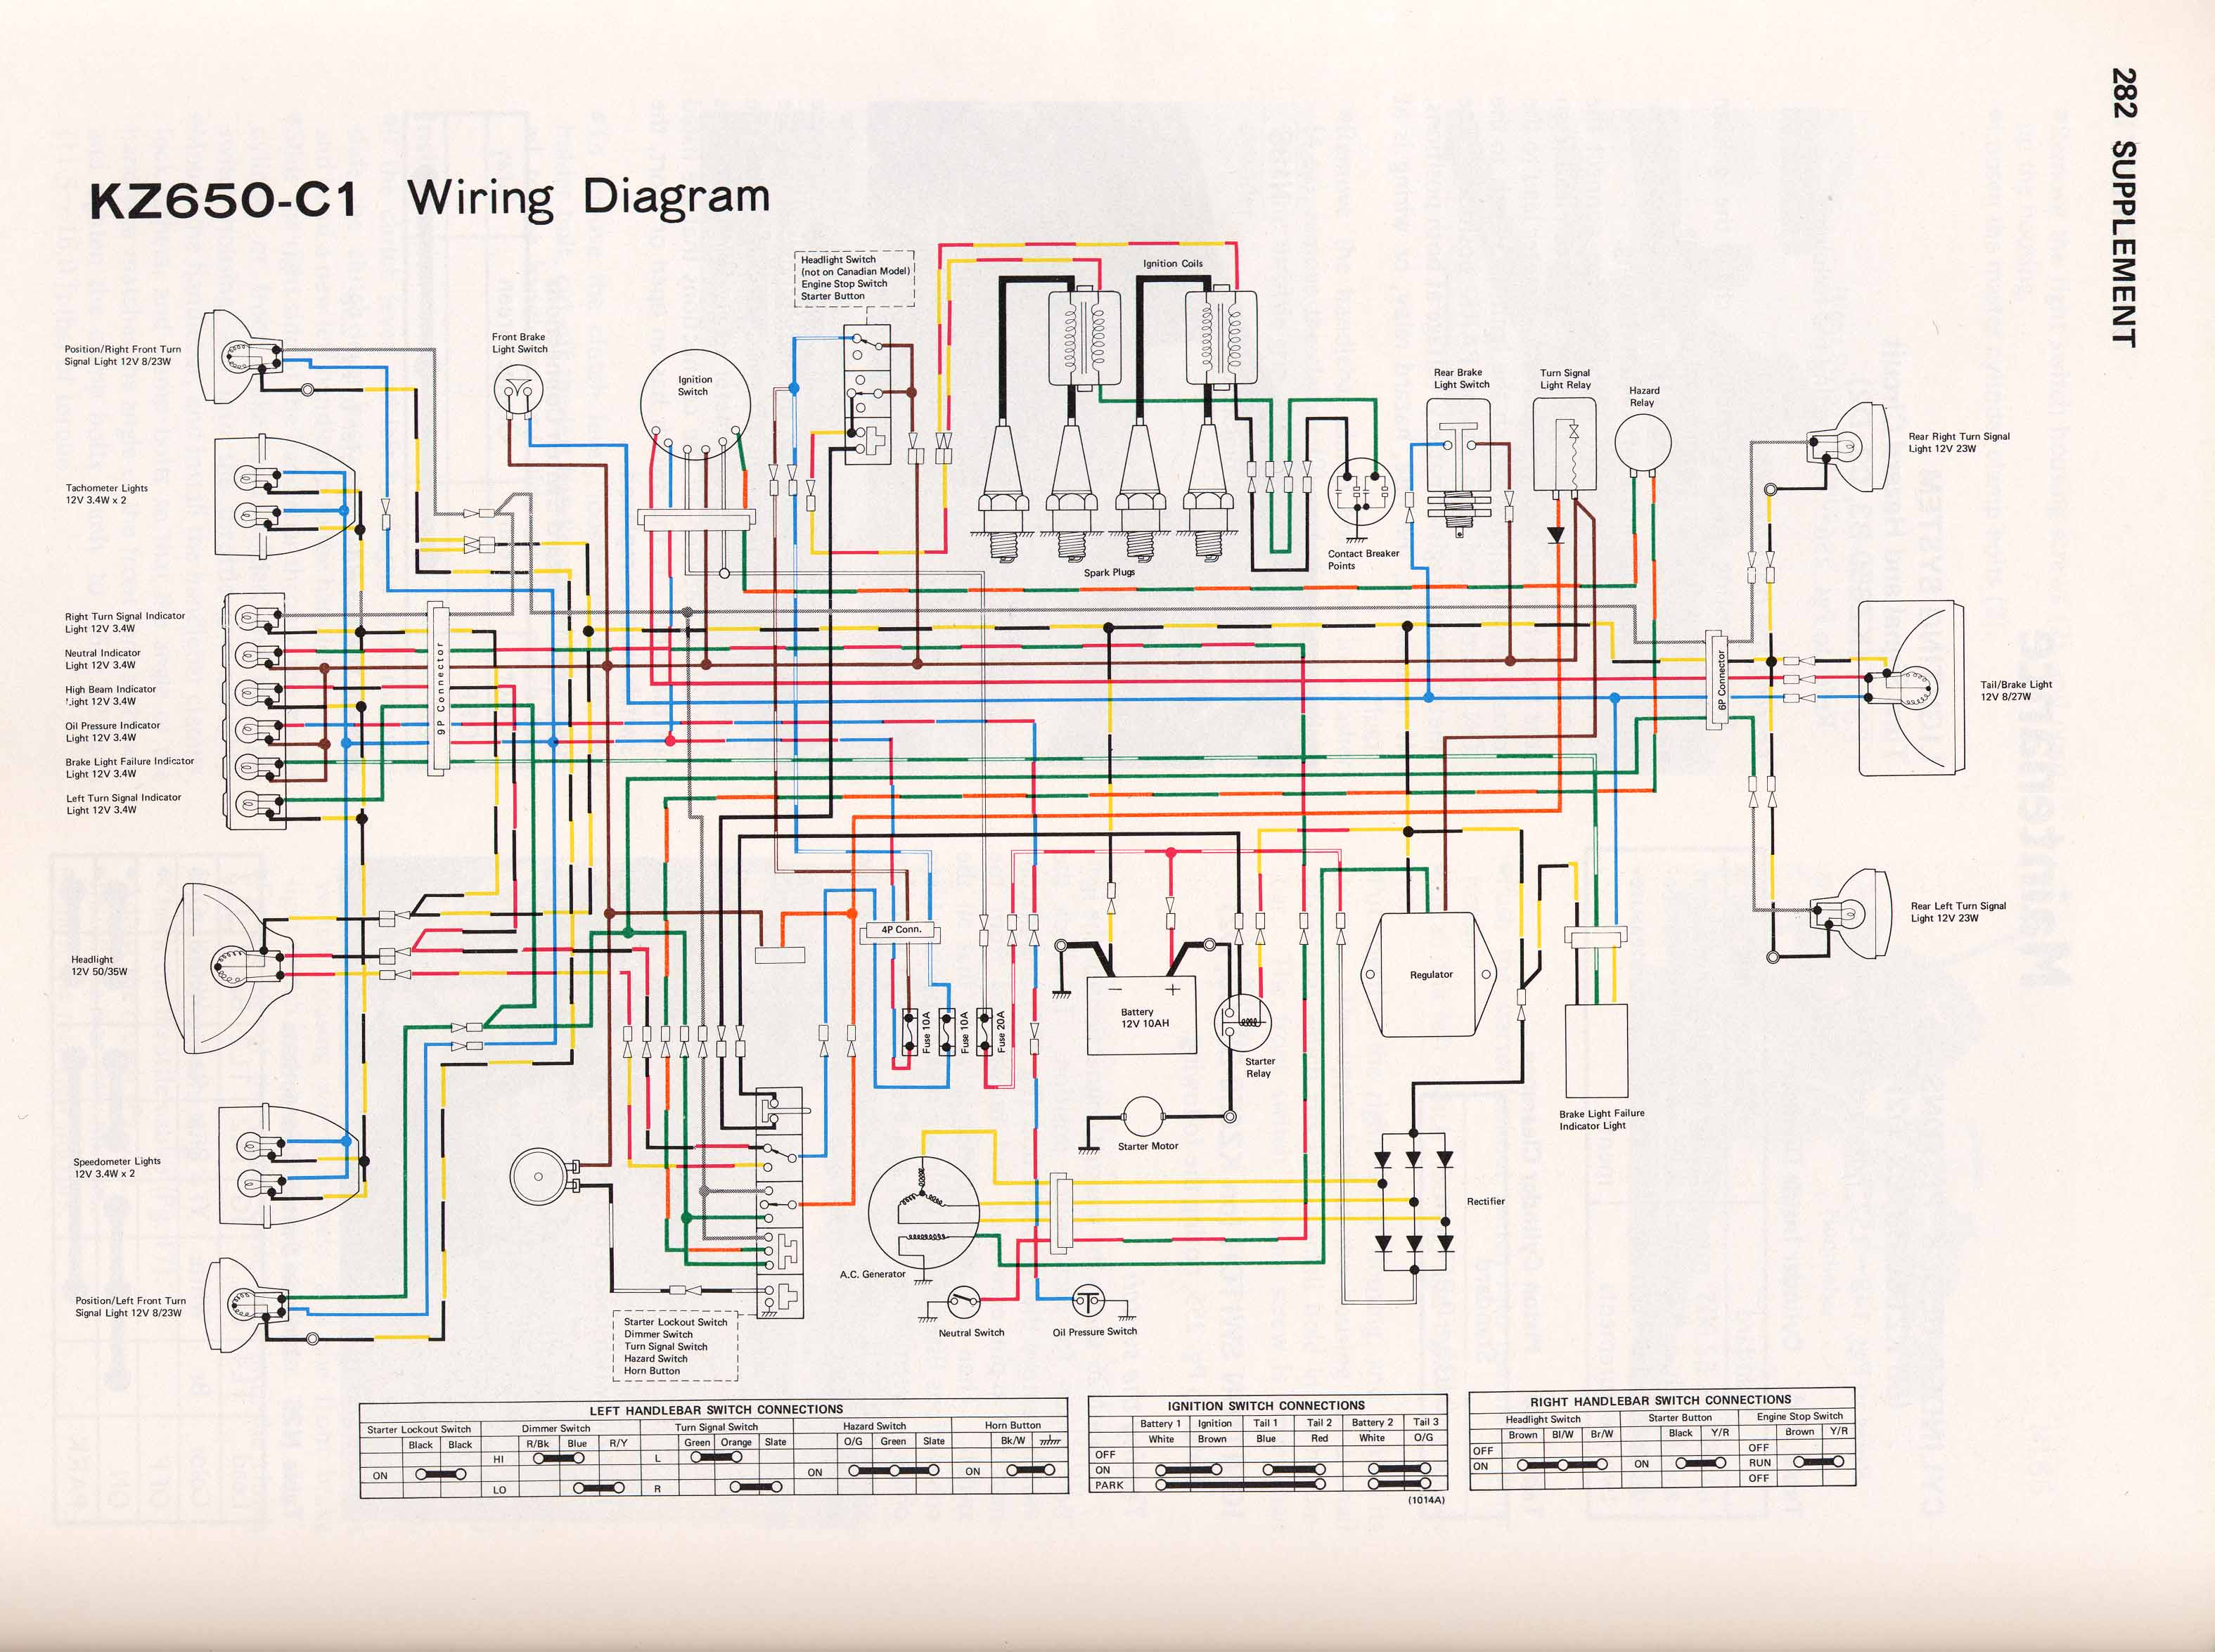 Kz650info Wiring Diagrams 1980 Corvette Engine Diagram Kz650 C1